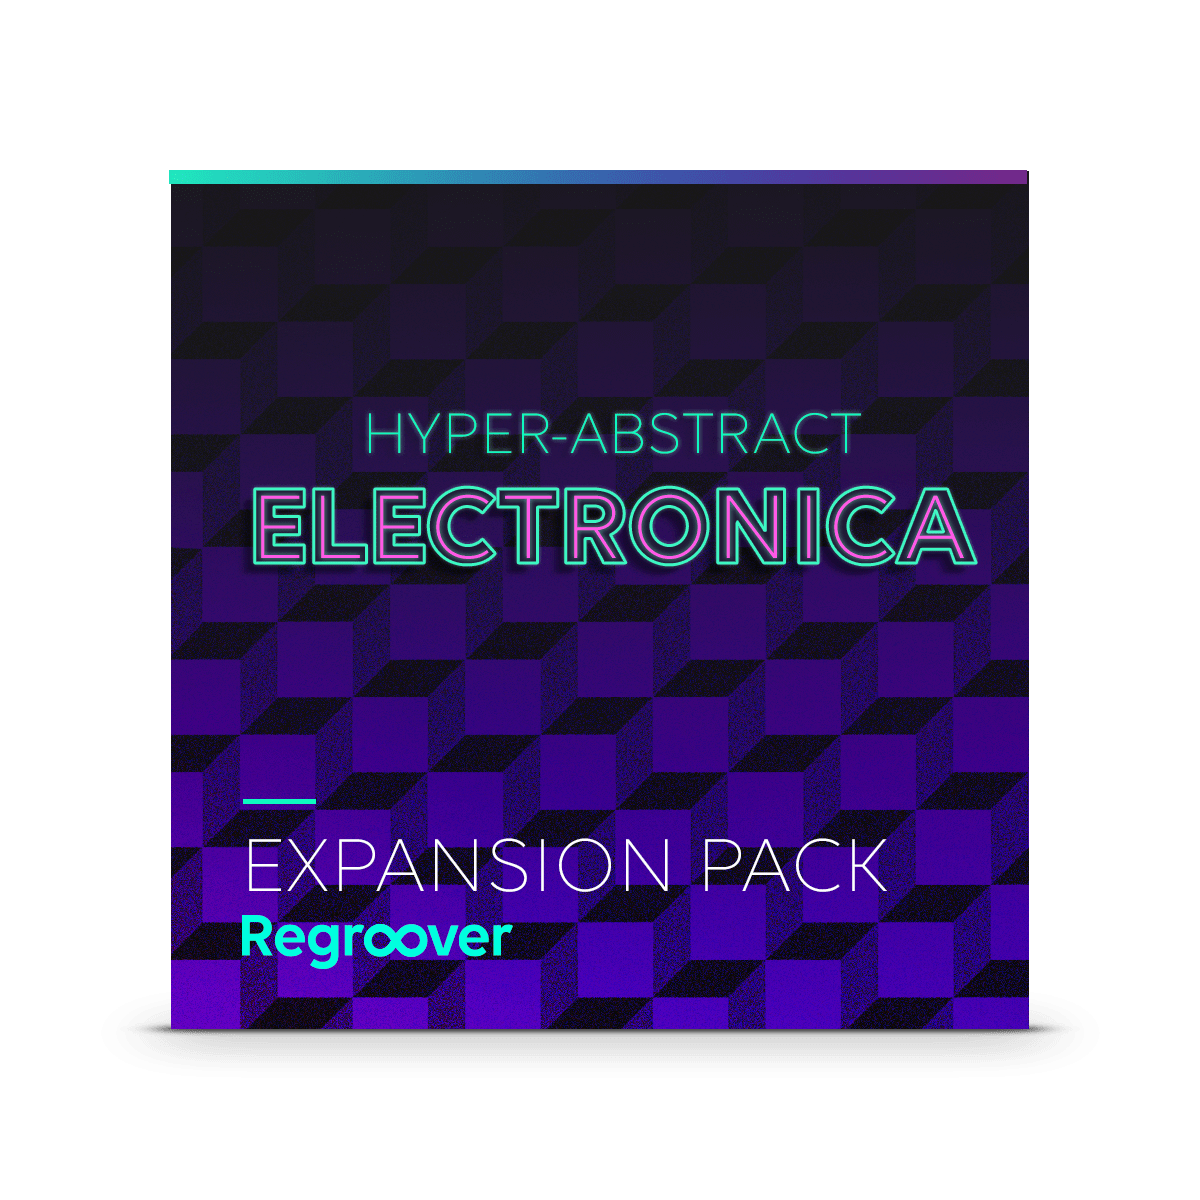 HYPER-ABSTRACT ELECTRONICA